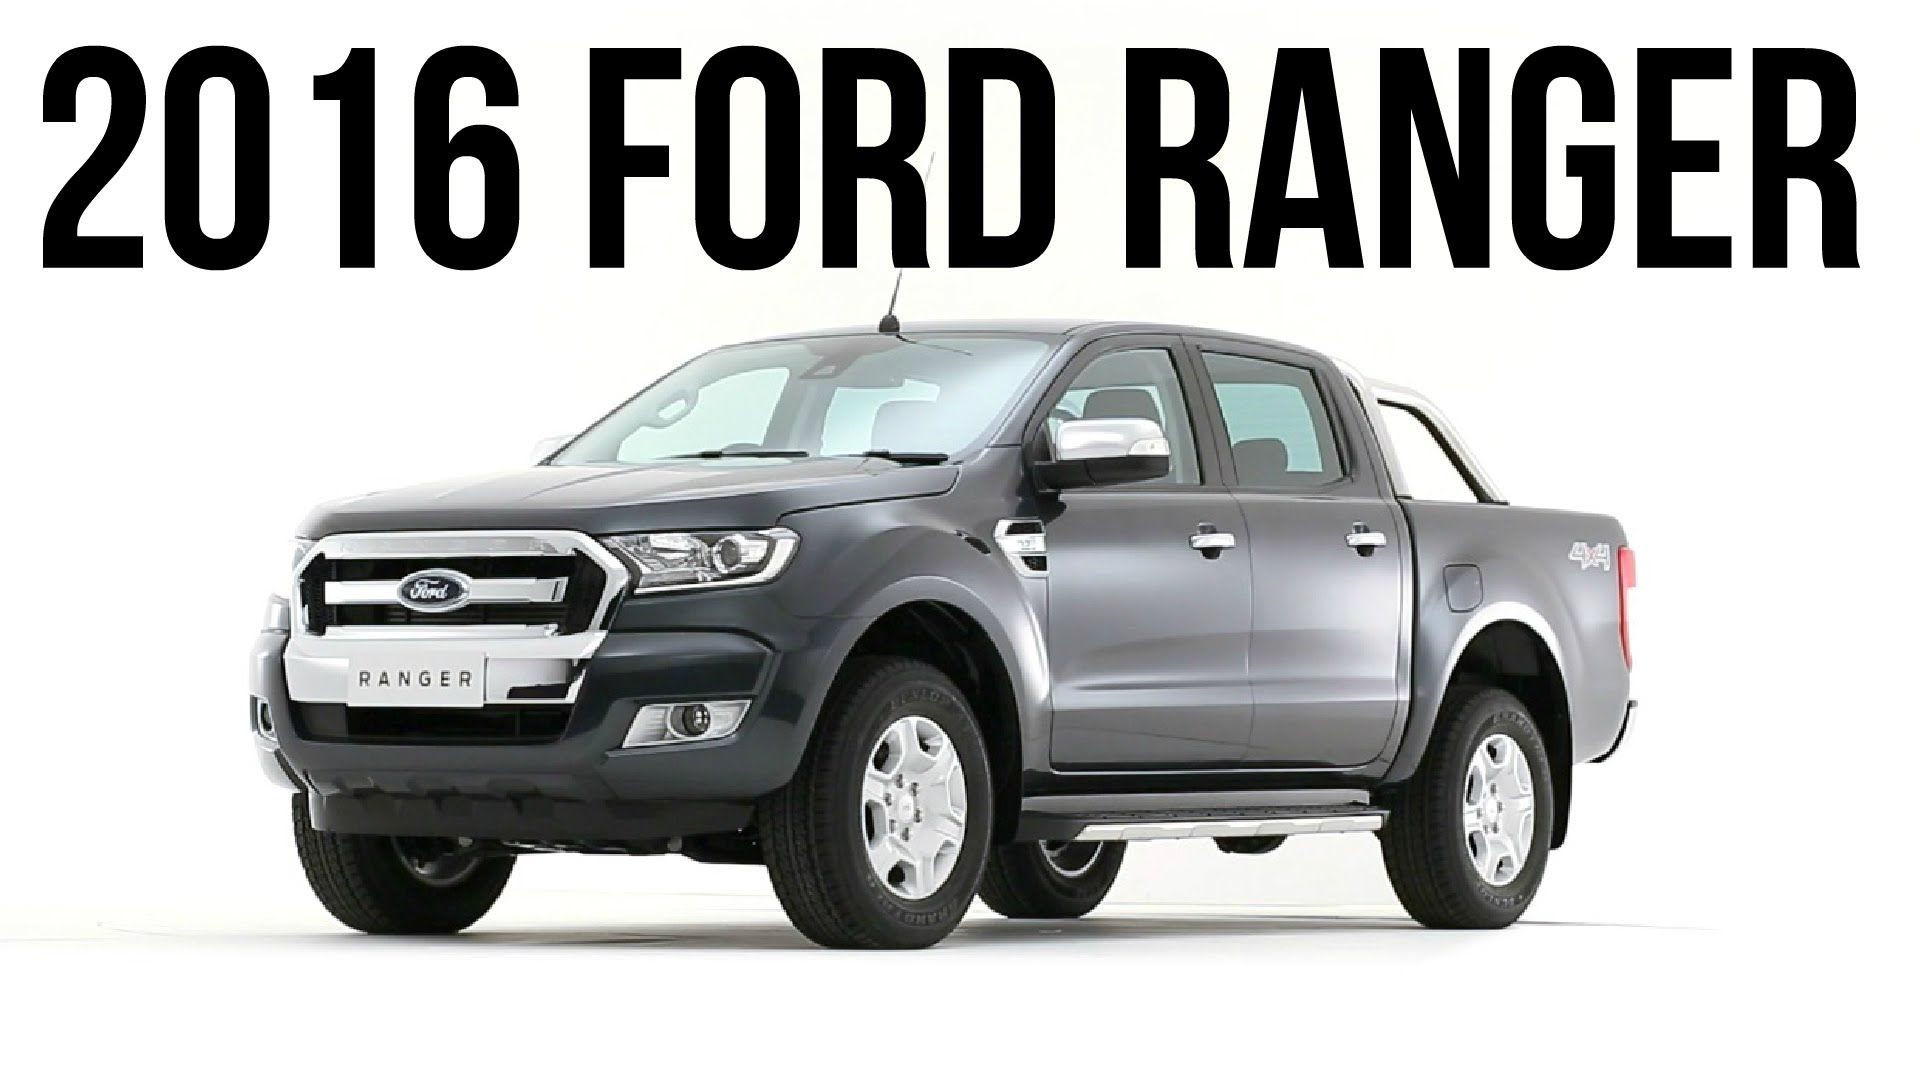 2016 ford ranger interior and exterior